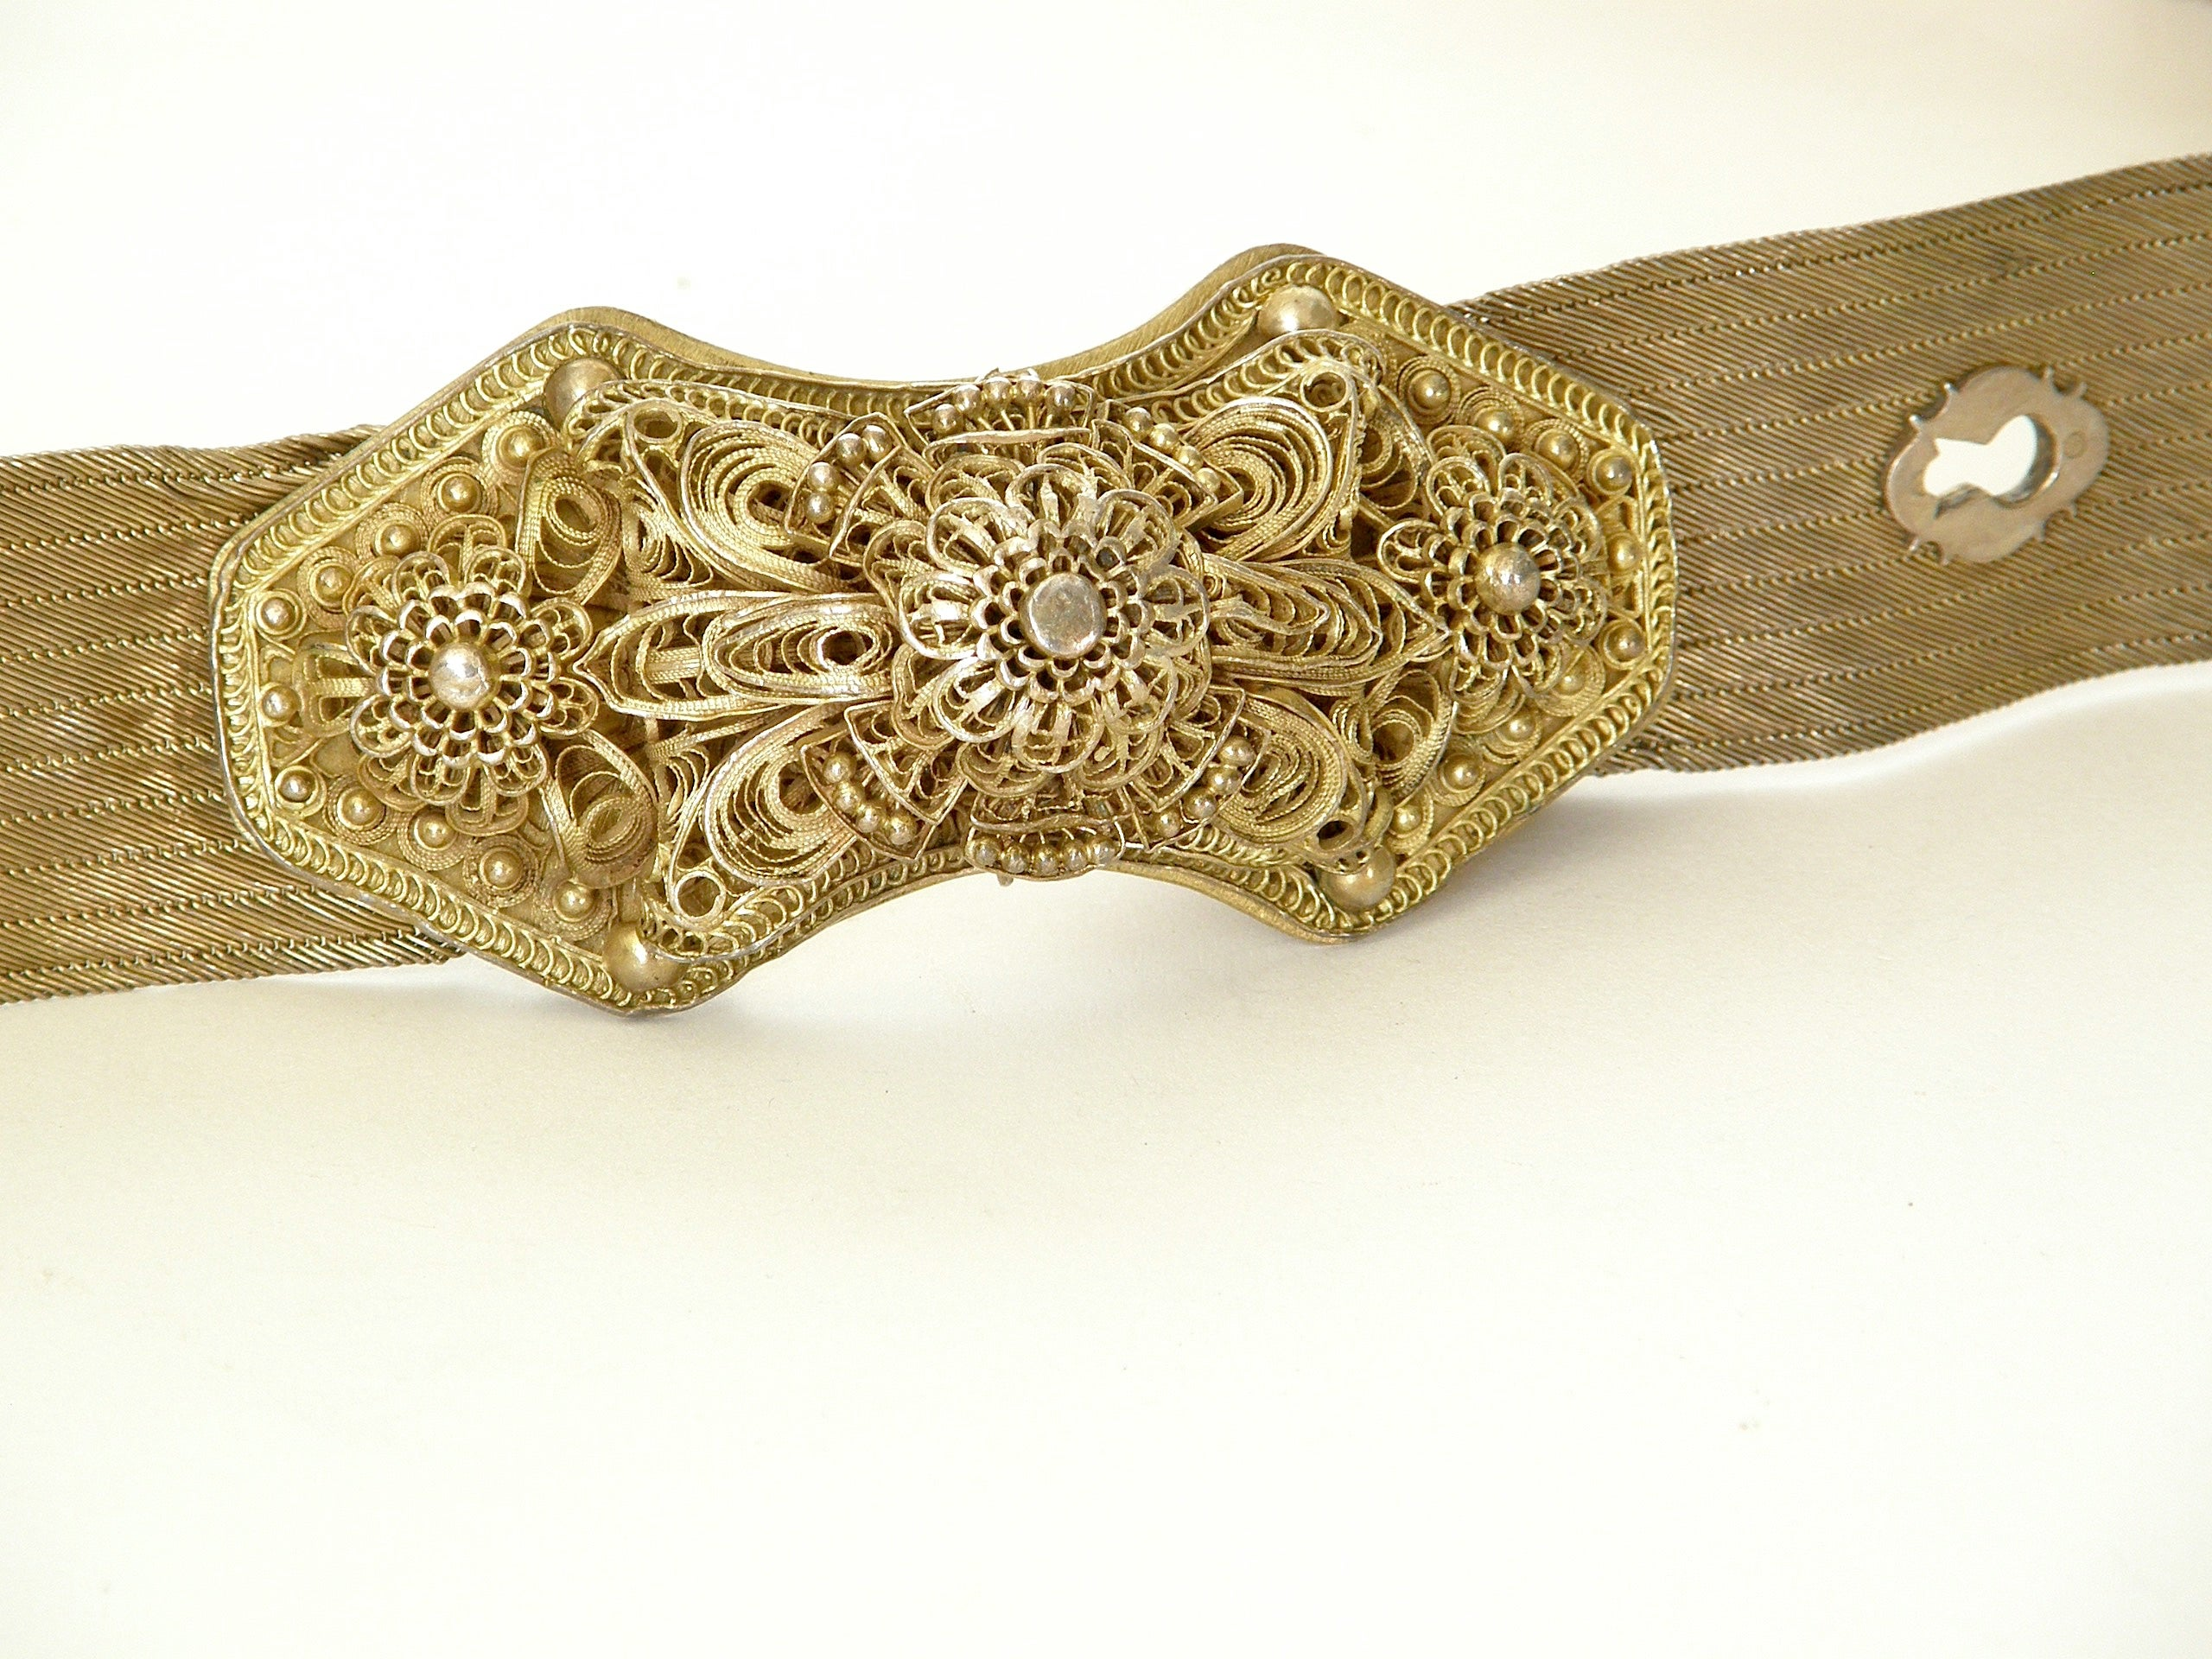 Antique Woven Sterling Mesh Belt with Gold Wash and Elaborate Filigree Buckle